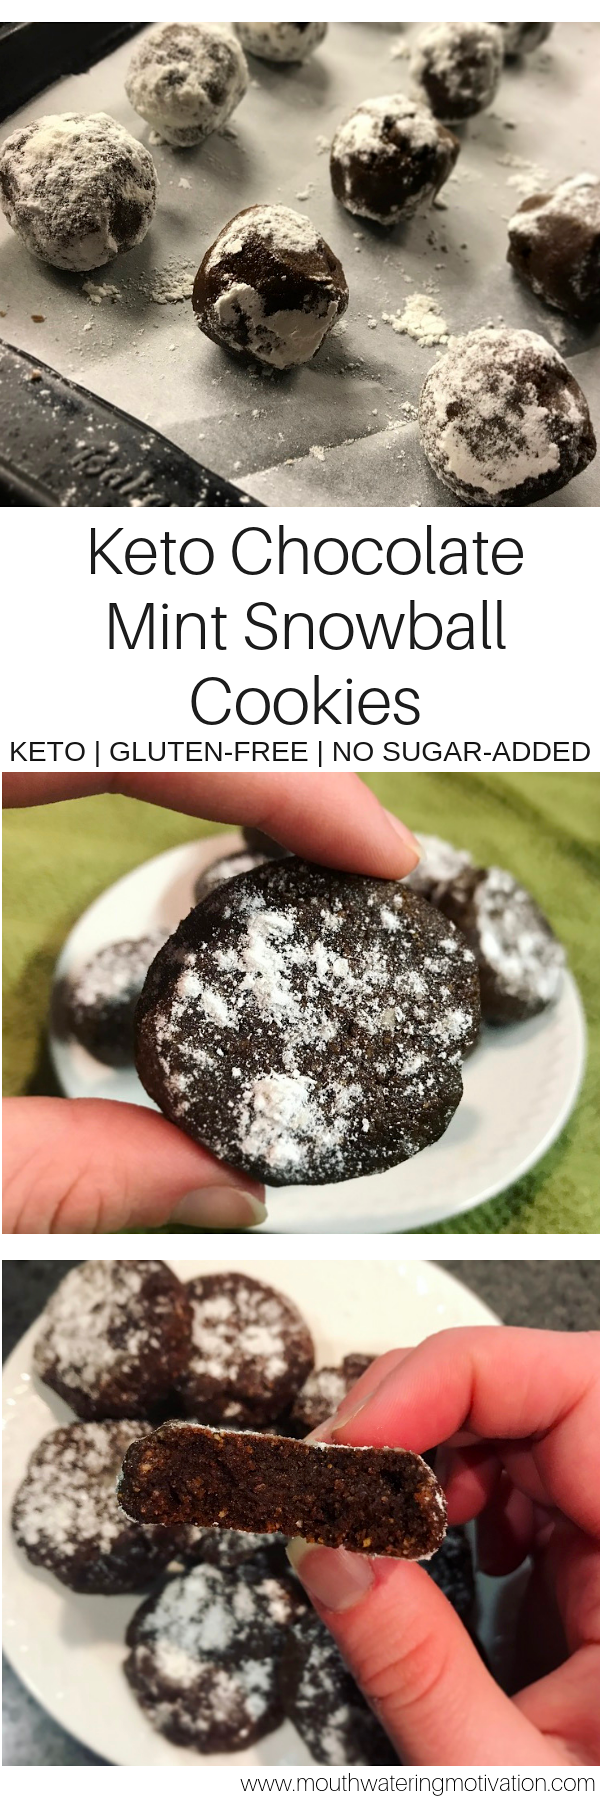 keto chocolate mint cookies